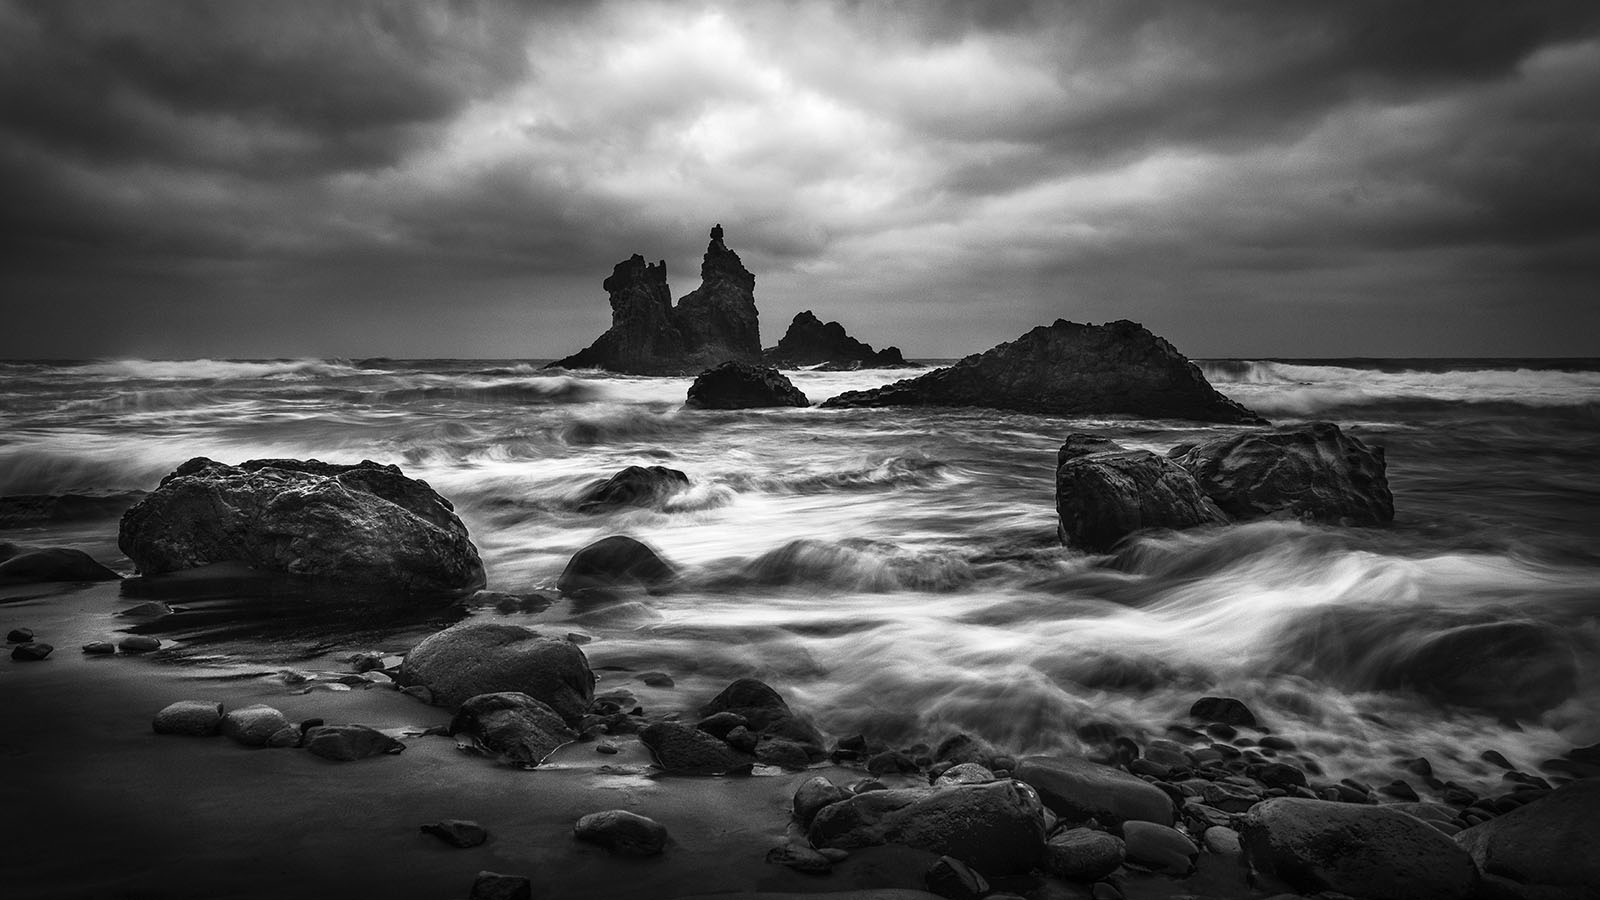 Tenerife - Benijo Beach - Black & White Fine Art Photography Series